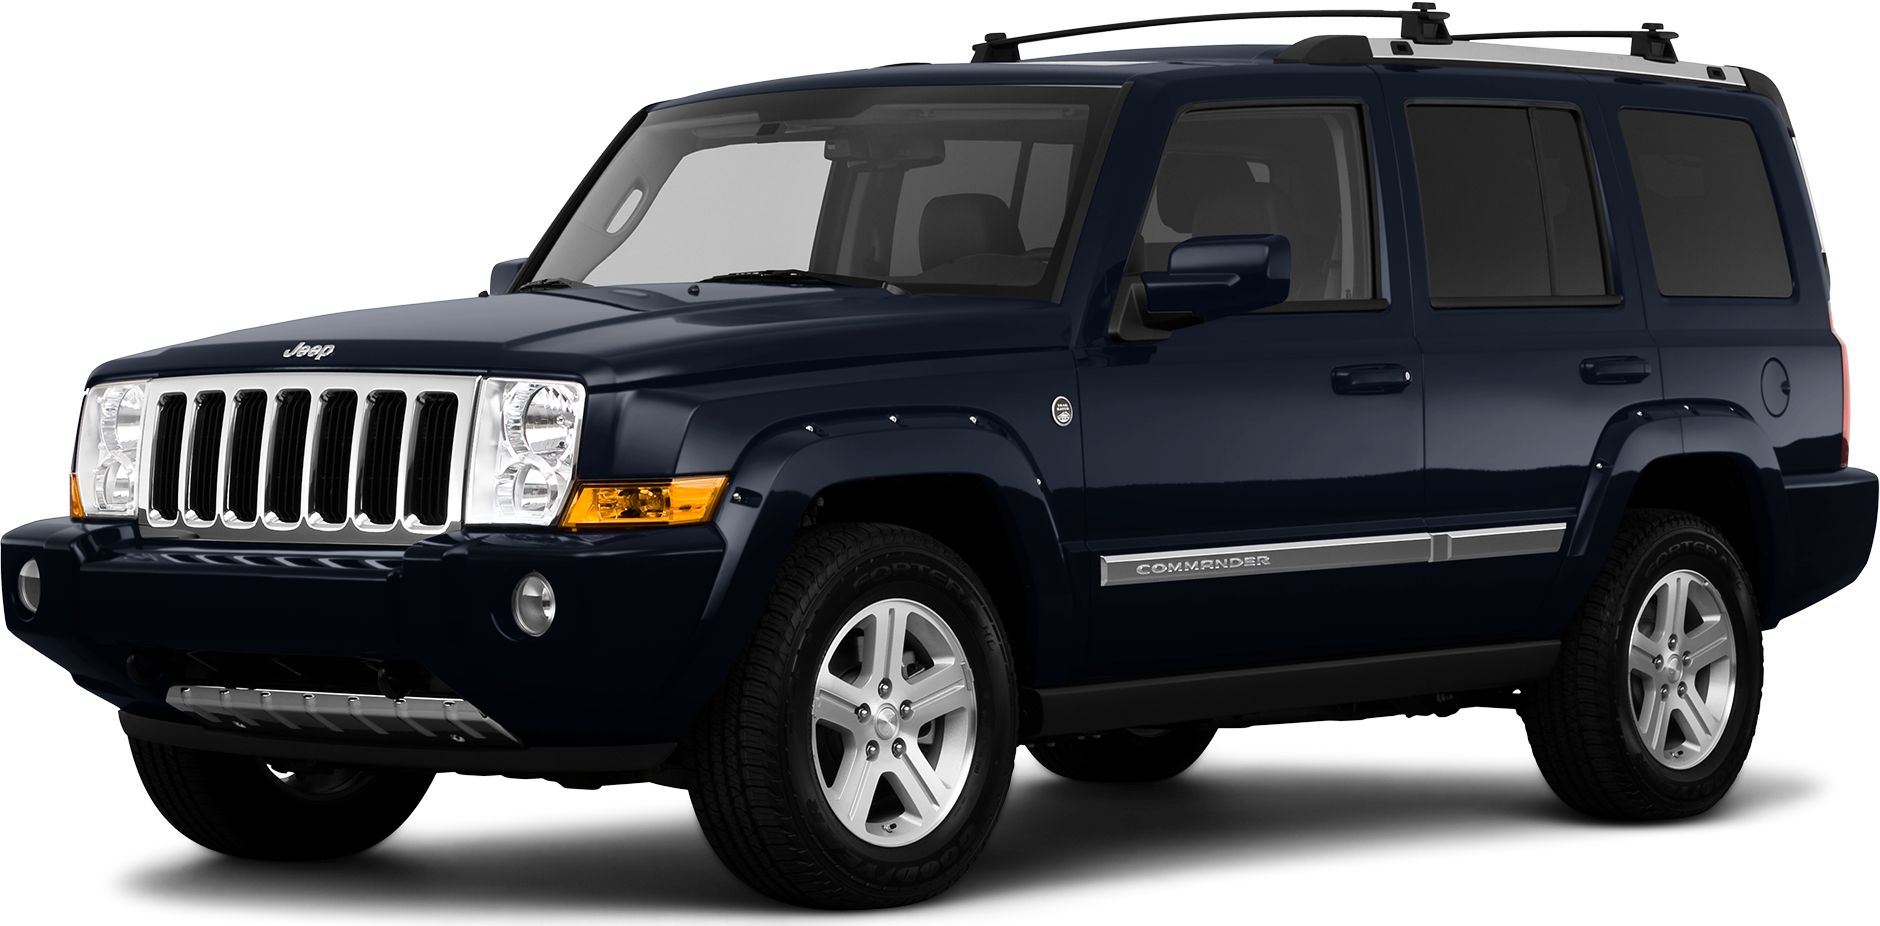 2010 Jeep Commander Values Cars For Sale Kelley Blue Book